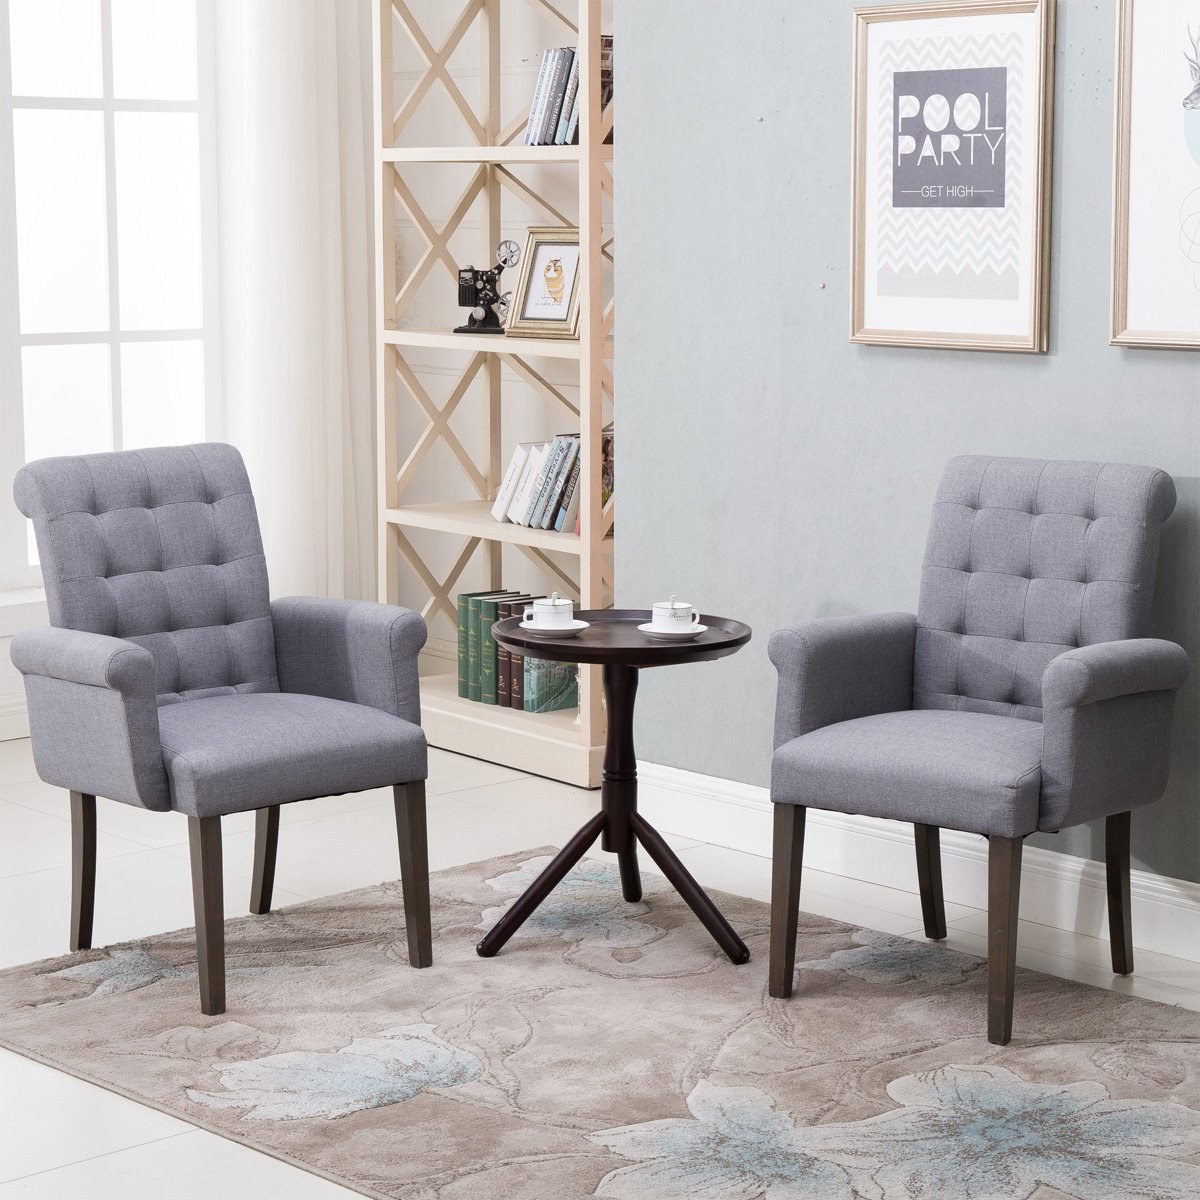 Harper Bright Designs Set of 2 Fabric Tufted Dining Chair Accent Chair with Armrest and Solid Wood Legs Grey